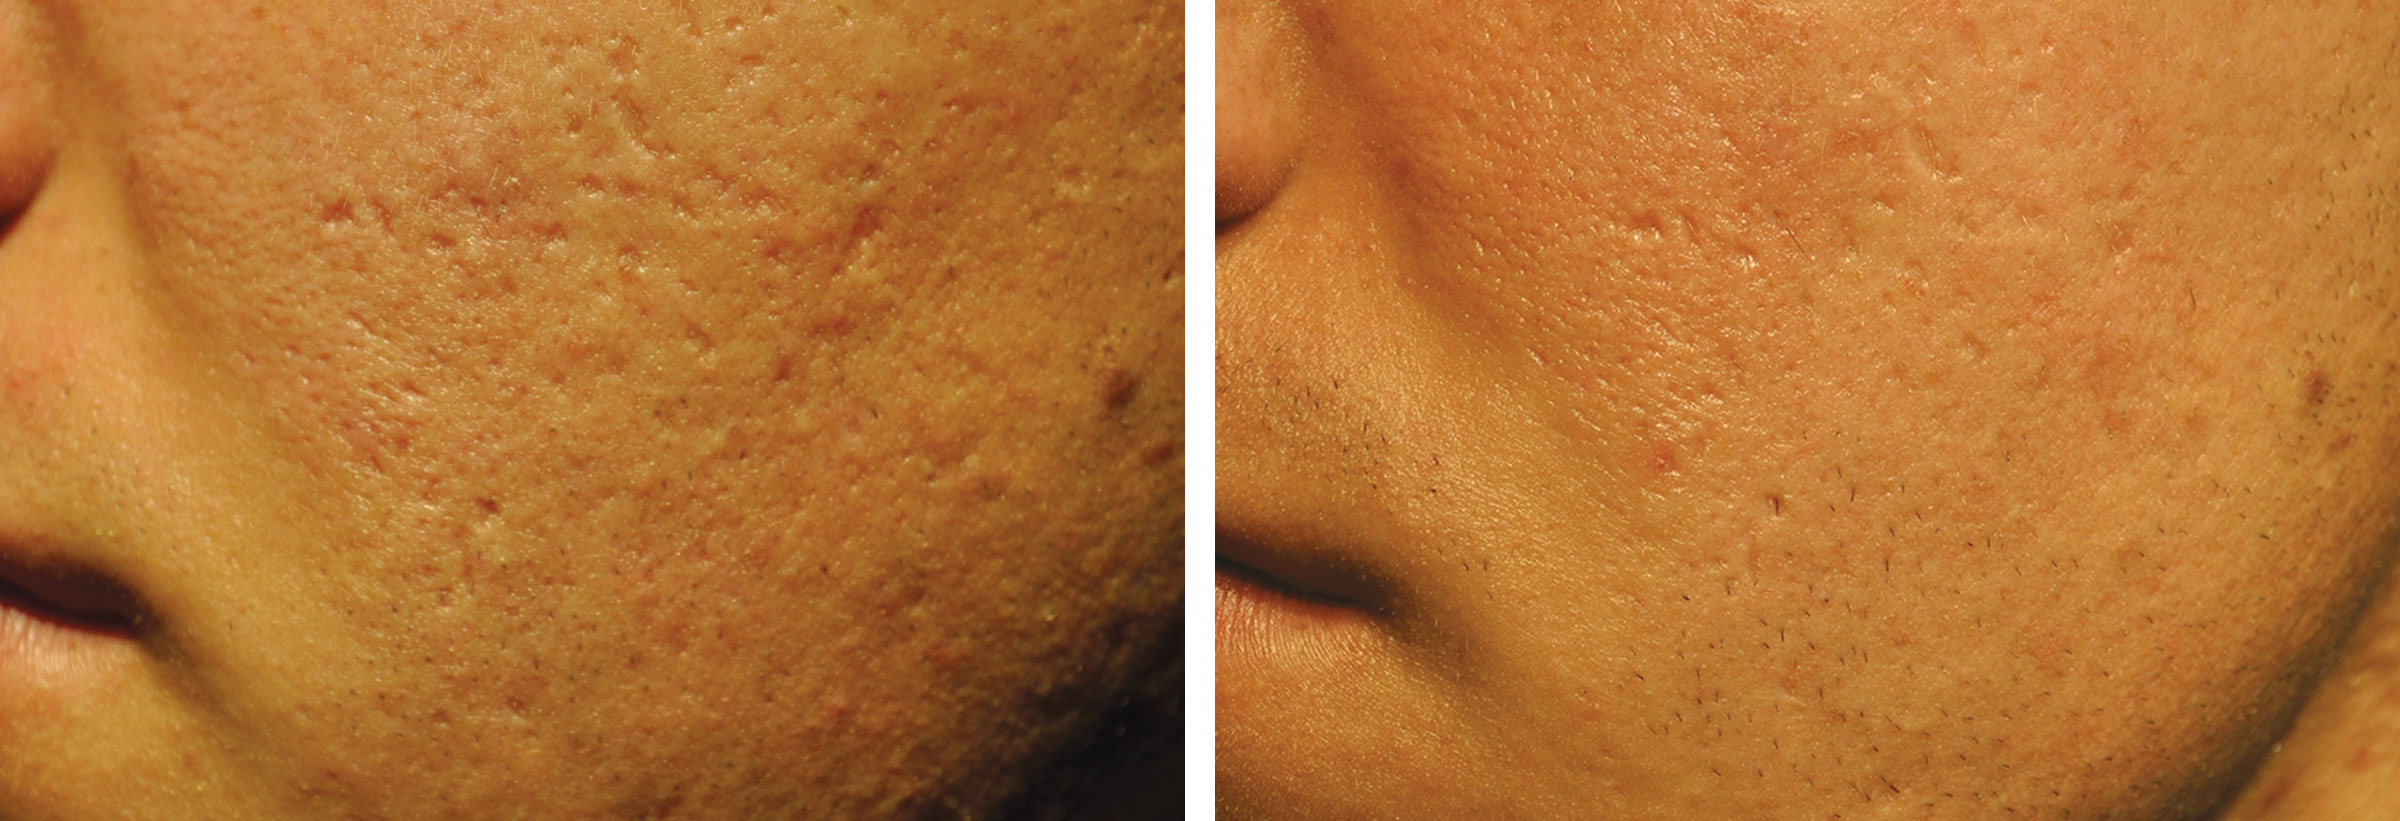 22 year-old male before and after 4 micro-needling treatments